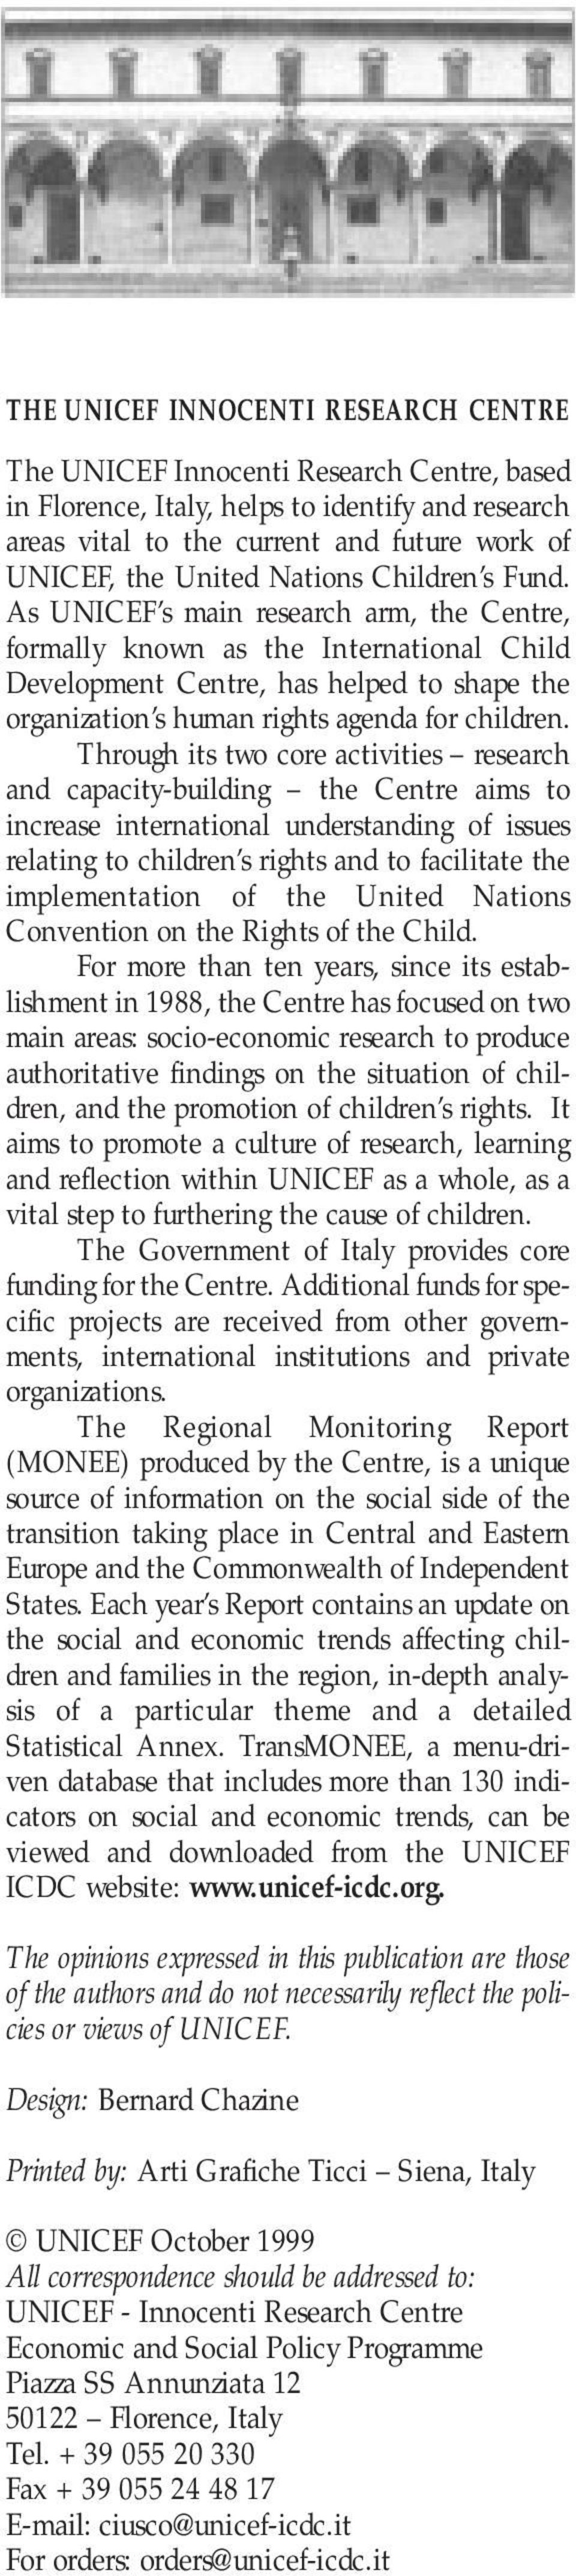 As UNICEF s main research arm, the Centre, formally known as the International Child Development Centre, has helped to shape the organization s human rights agenda for children.